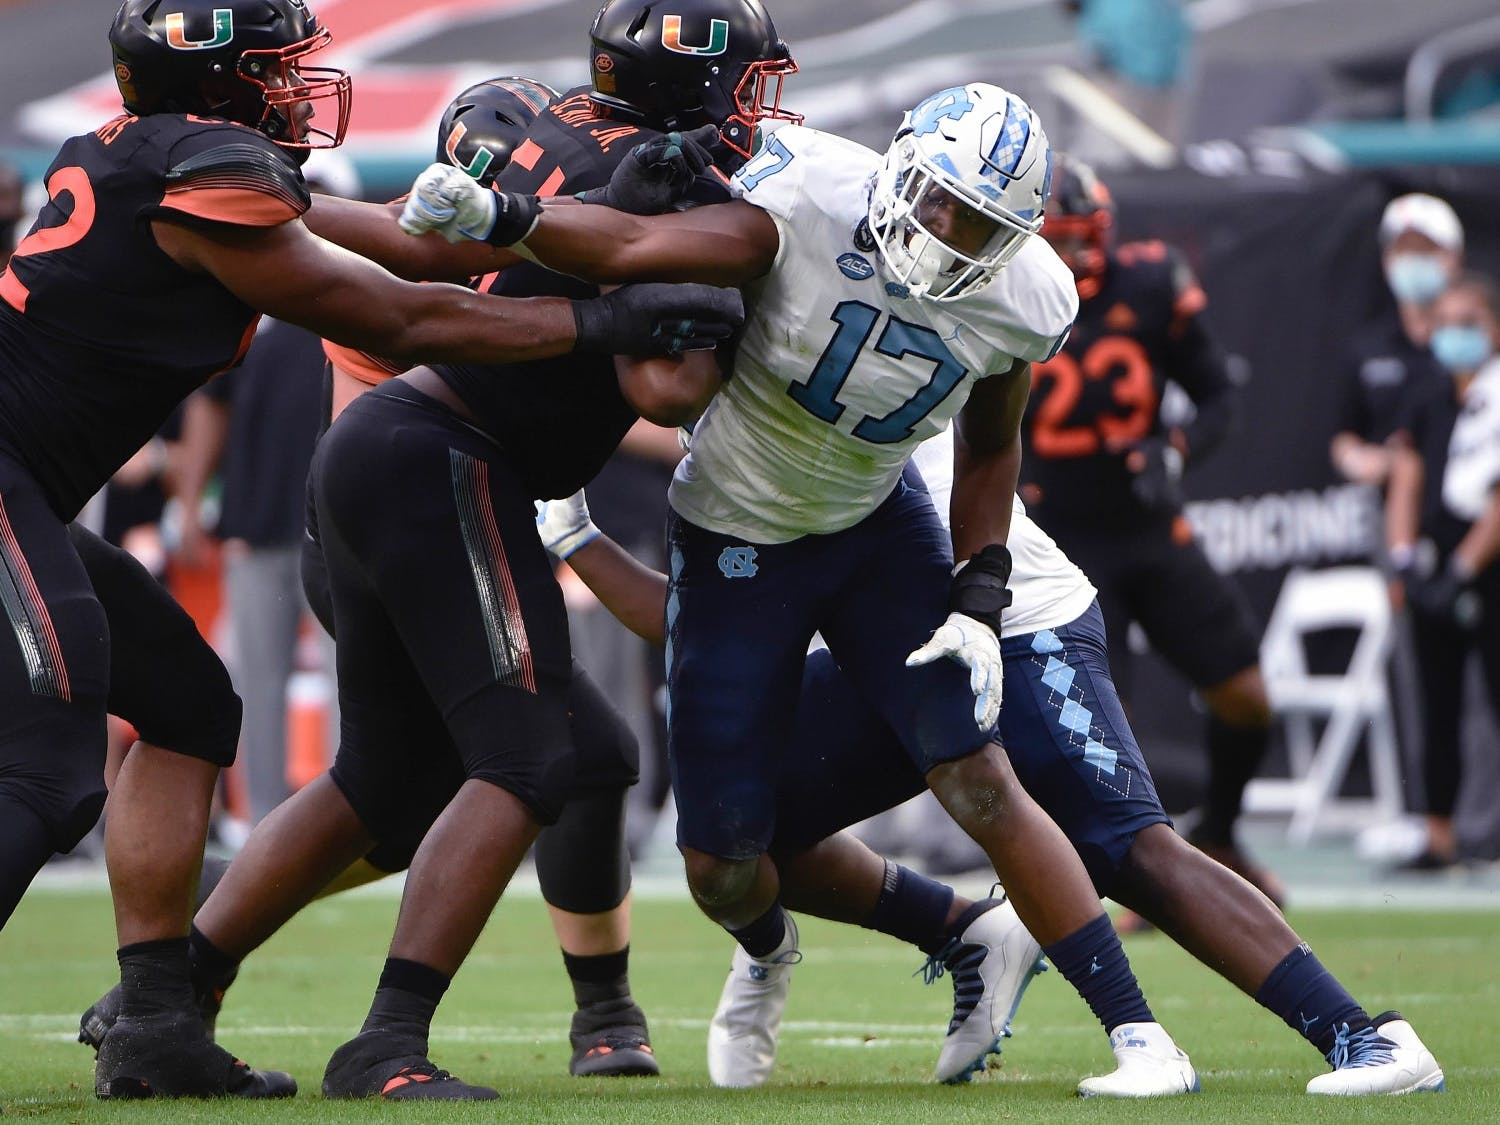 UNC sophomore linebacker Chris Collins (11) drives upfield during a game against Miami in Hard Rock Stadium on Saturday, Dec. 12, 2020. UNC beat Miami 62-26. Photo courtesy of Jeff Camarati via UNC Athletic Communications.